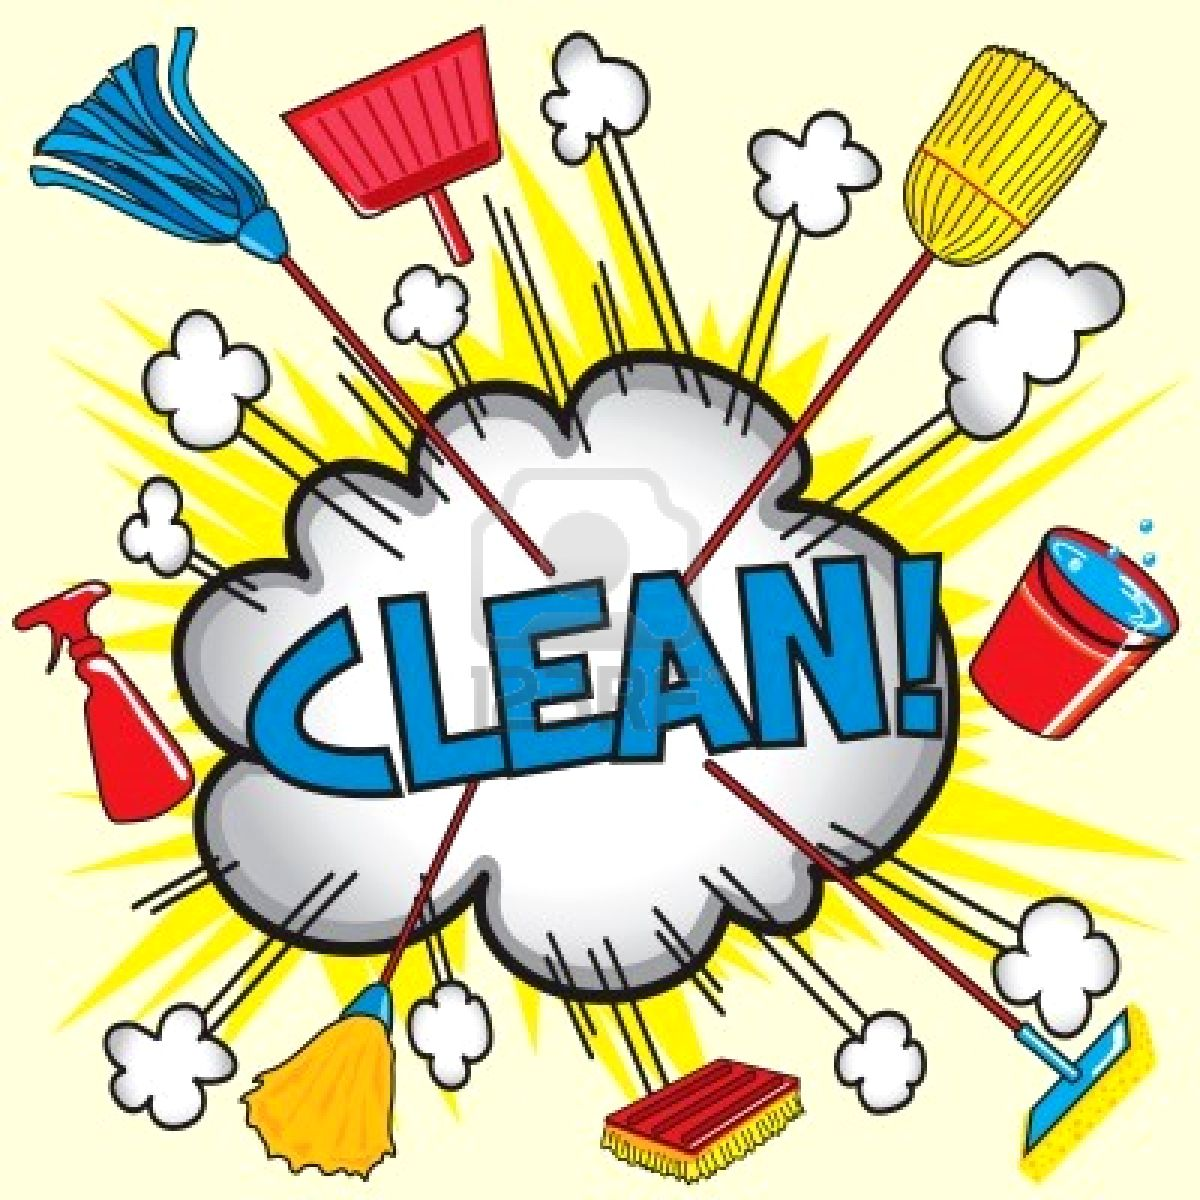 clean-up-toys-clipart-clean - Saint Peter the Apostle Saint Peter the  Apostle